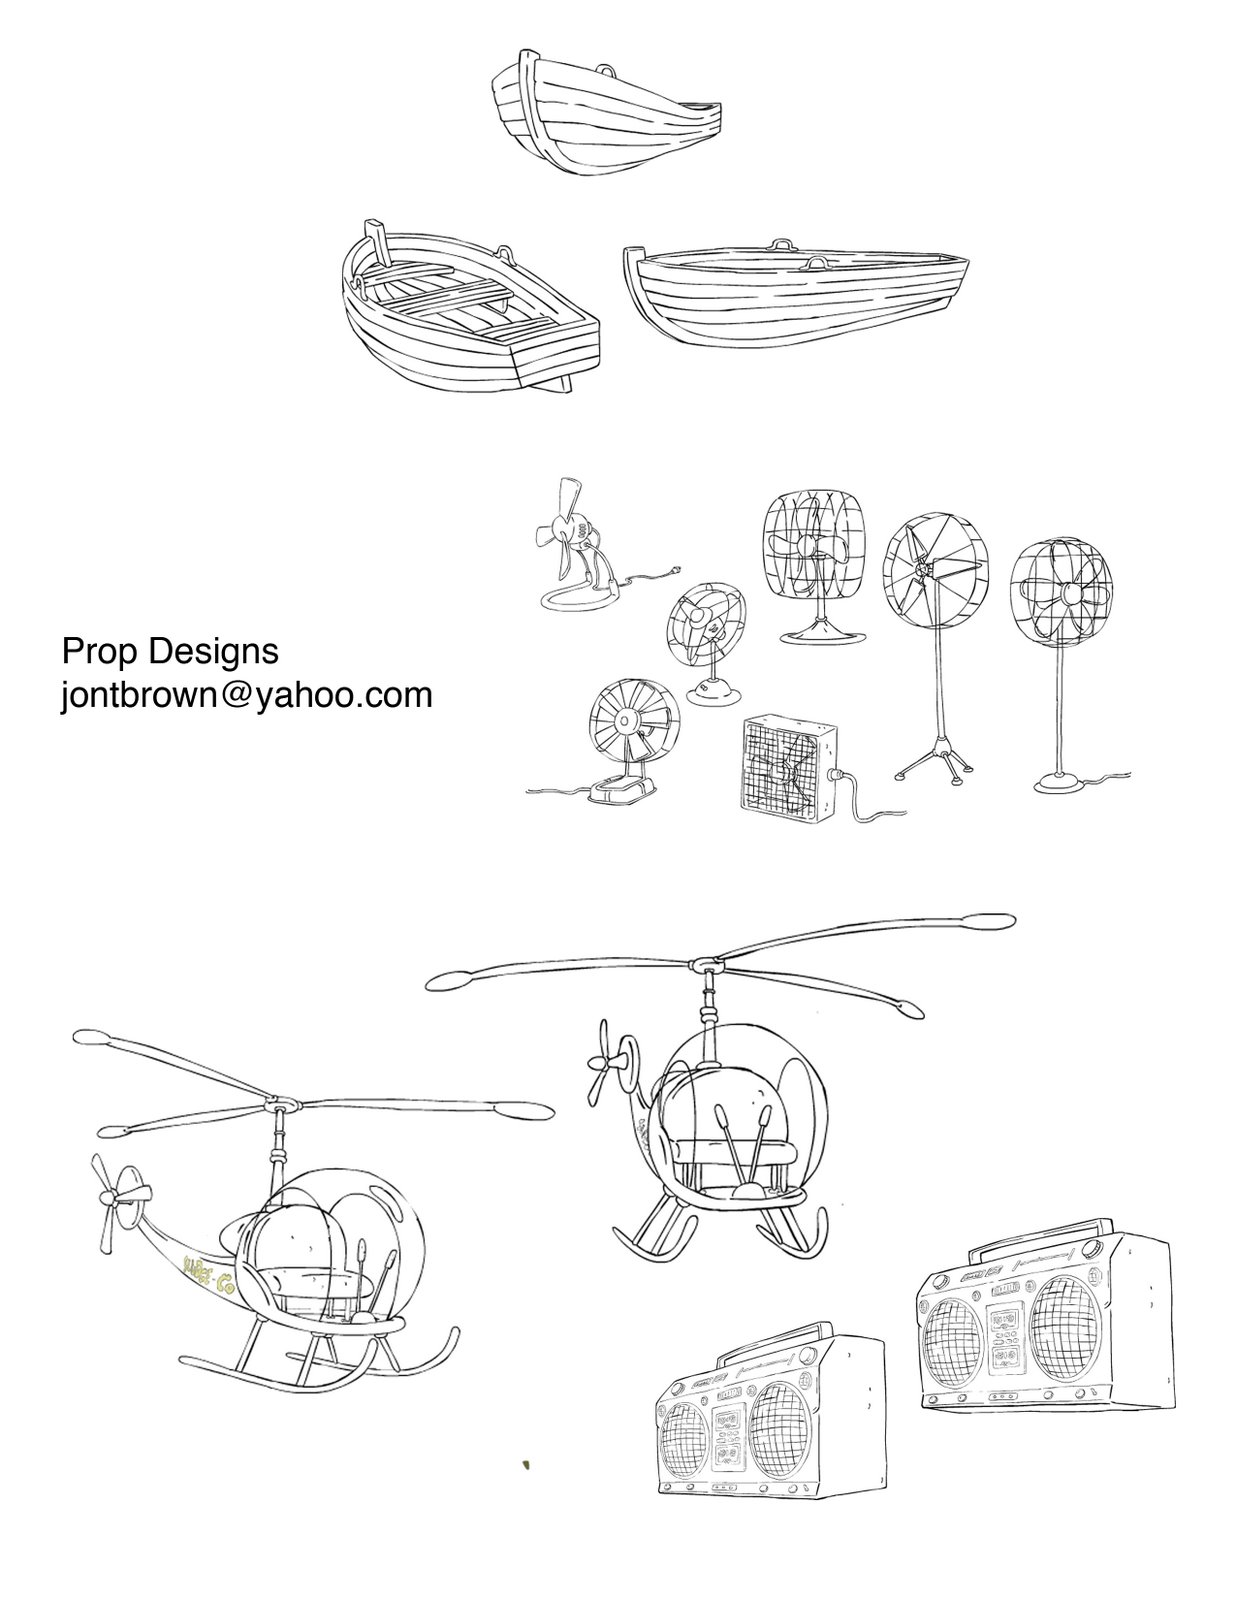 Prop Design Composite 2